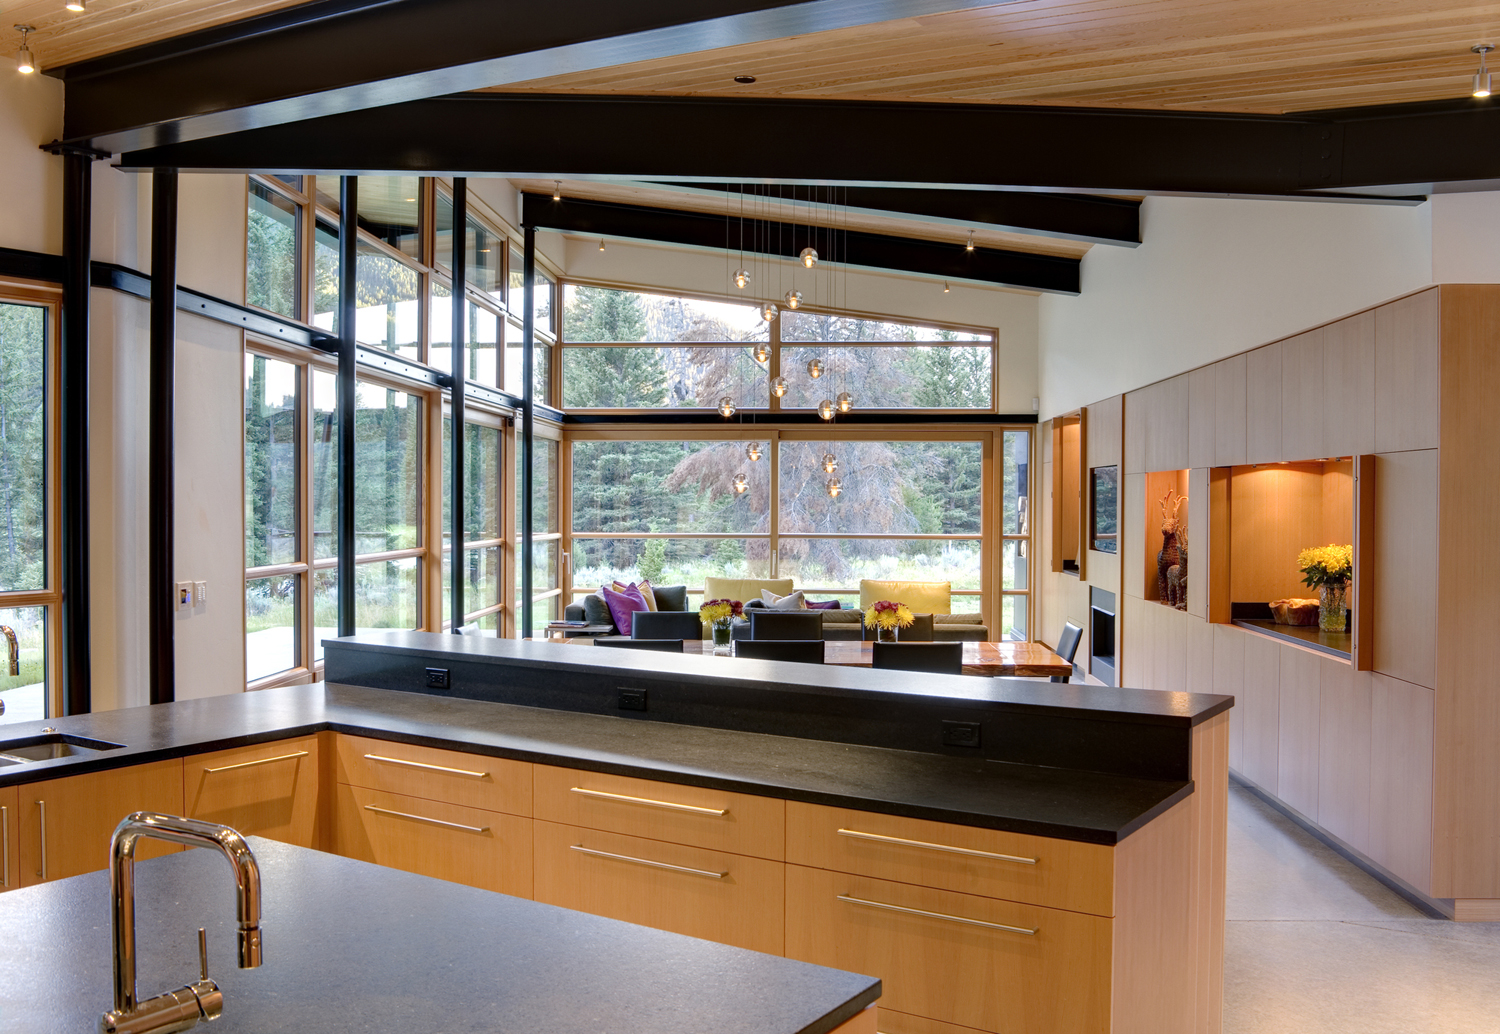 Montana river bank modern sustainable home idesignarch